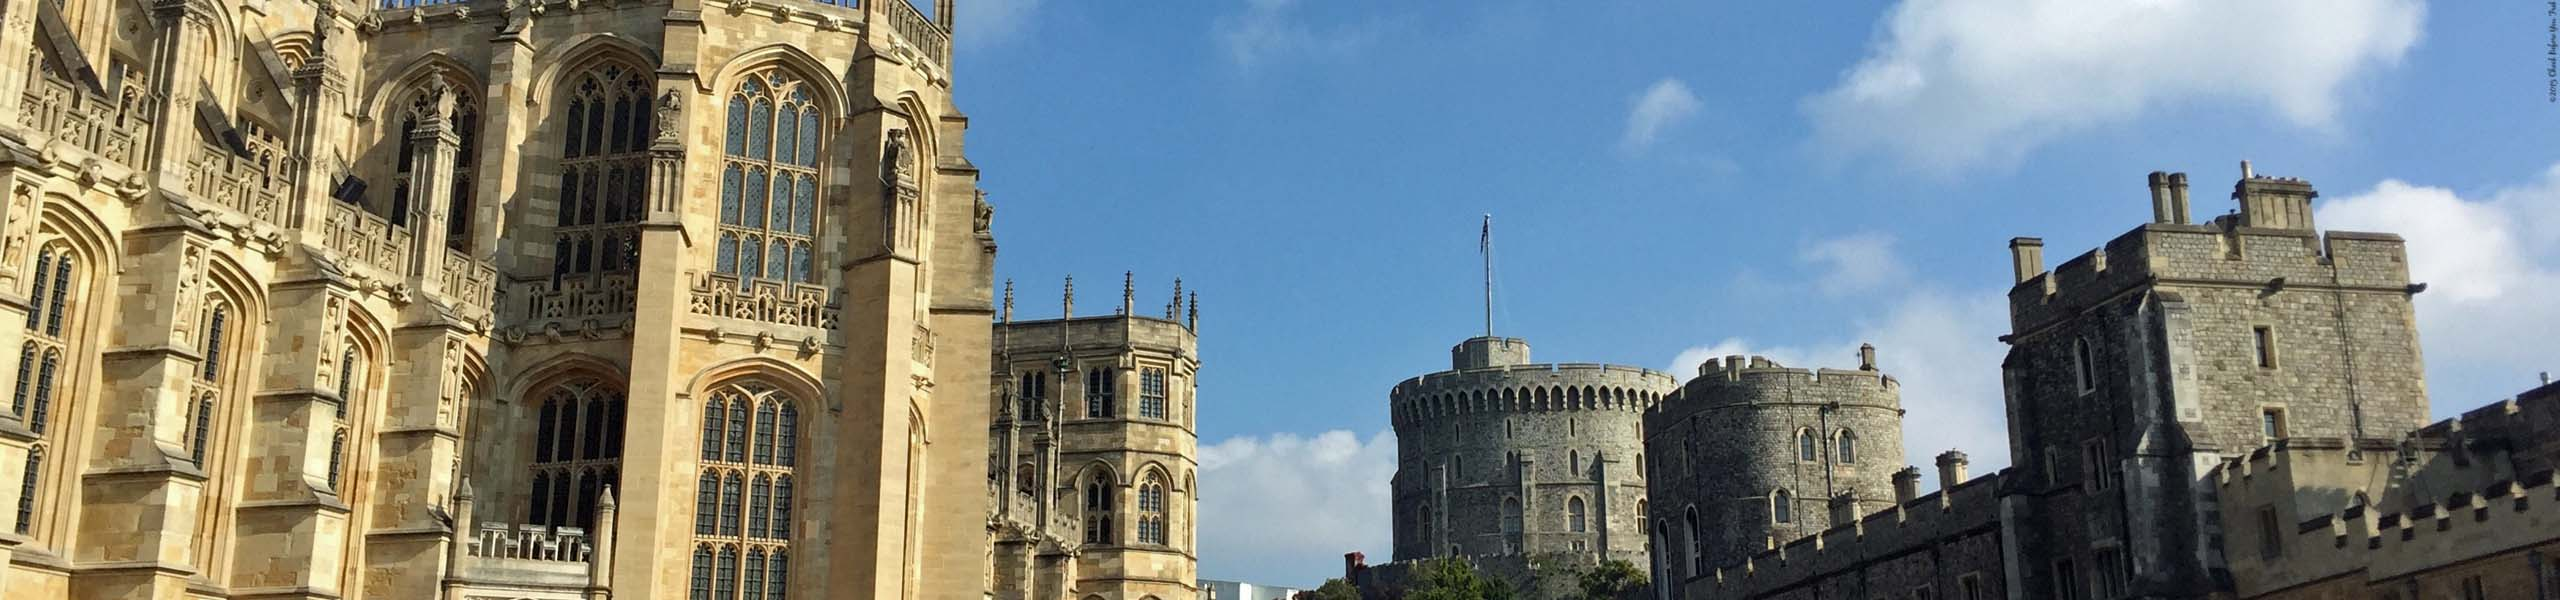 St George's Chapel and Round Tower - Windsor Castle - Windsor, England